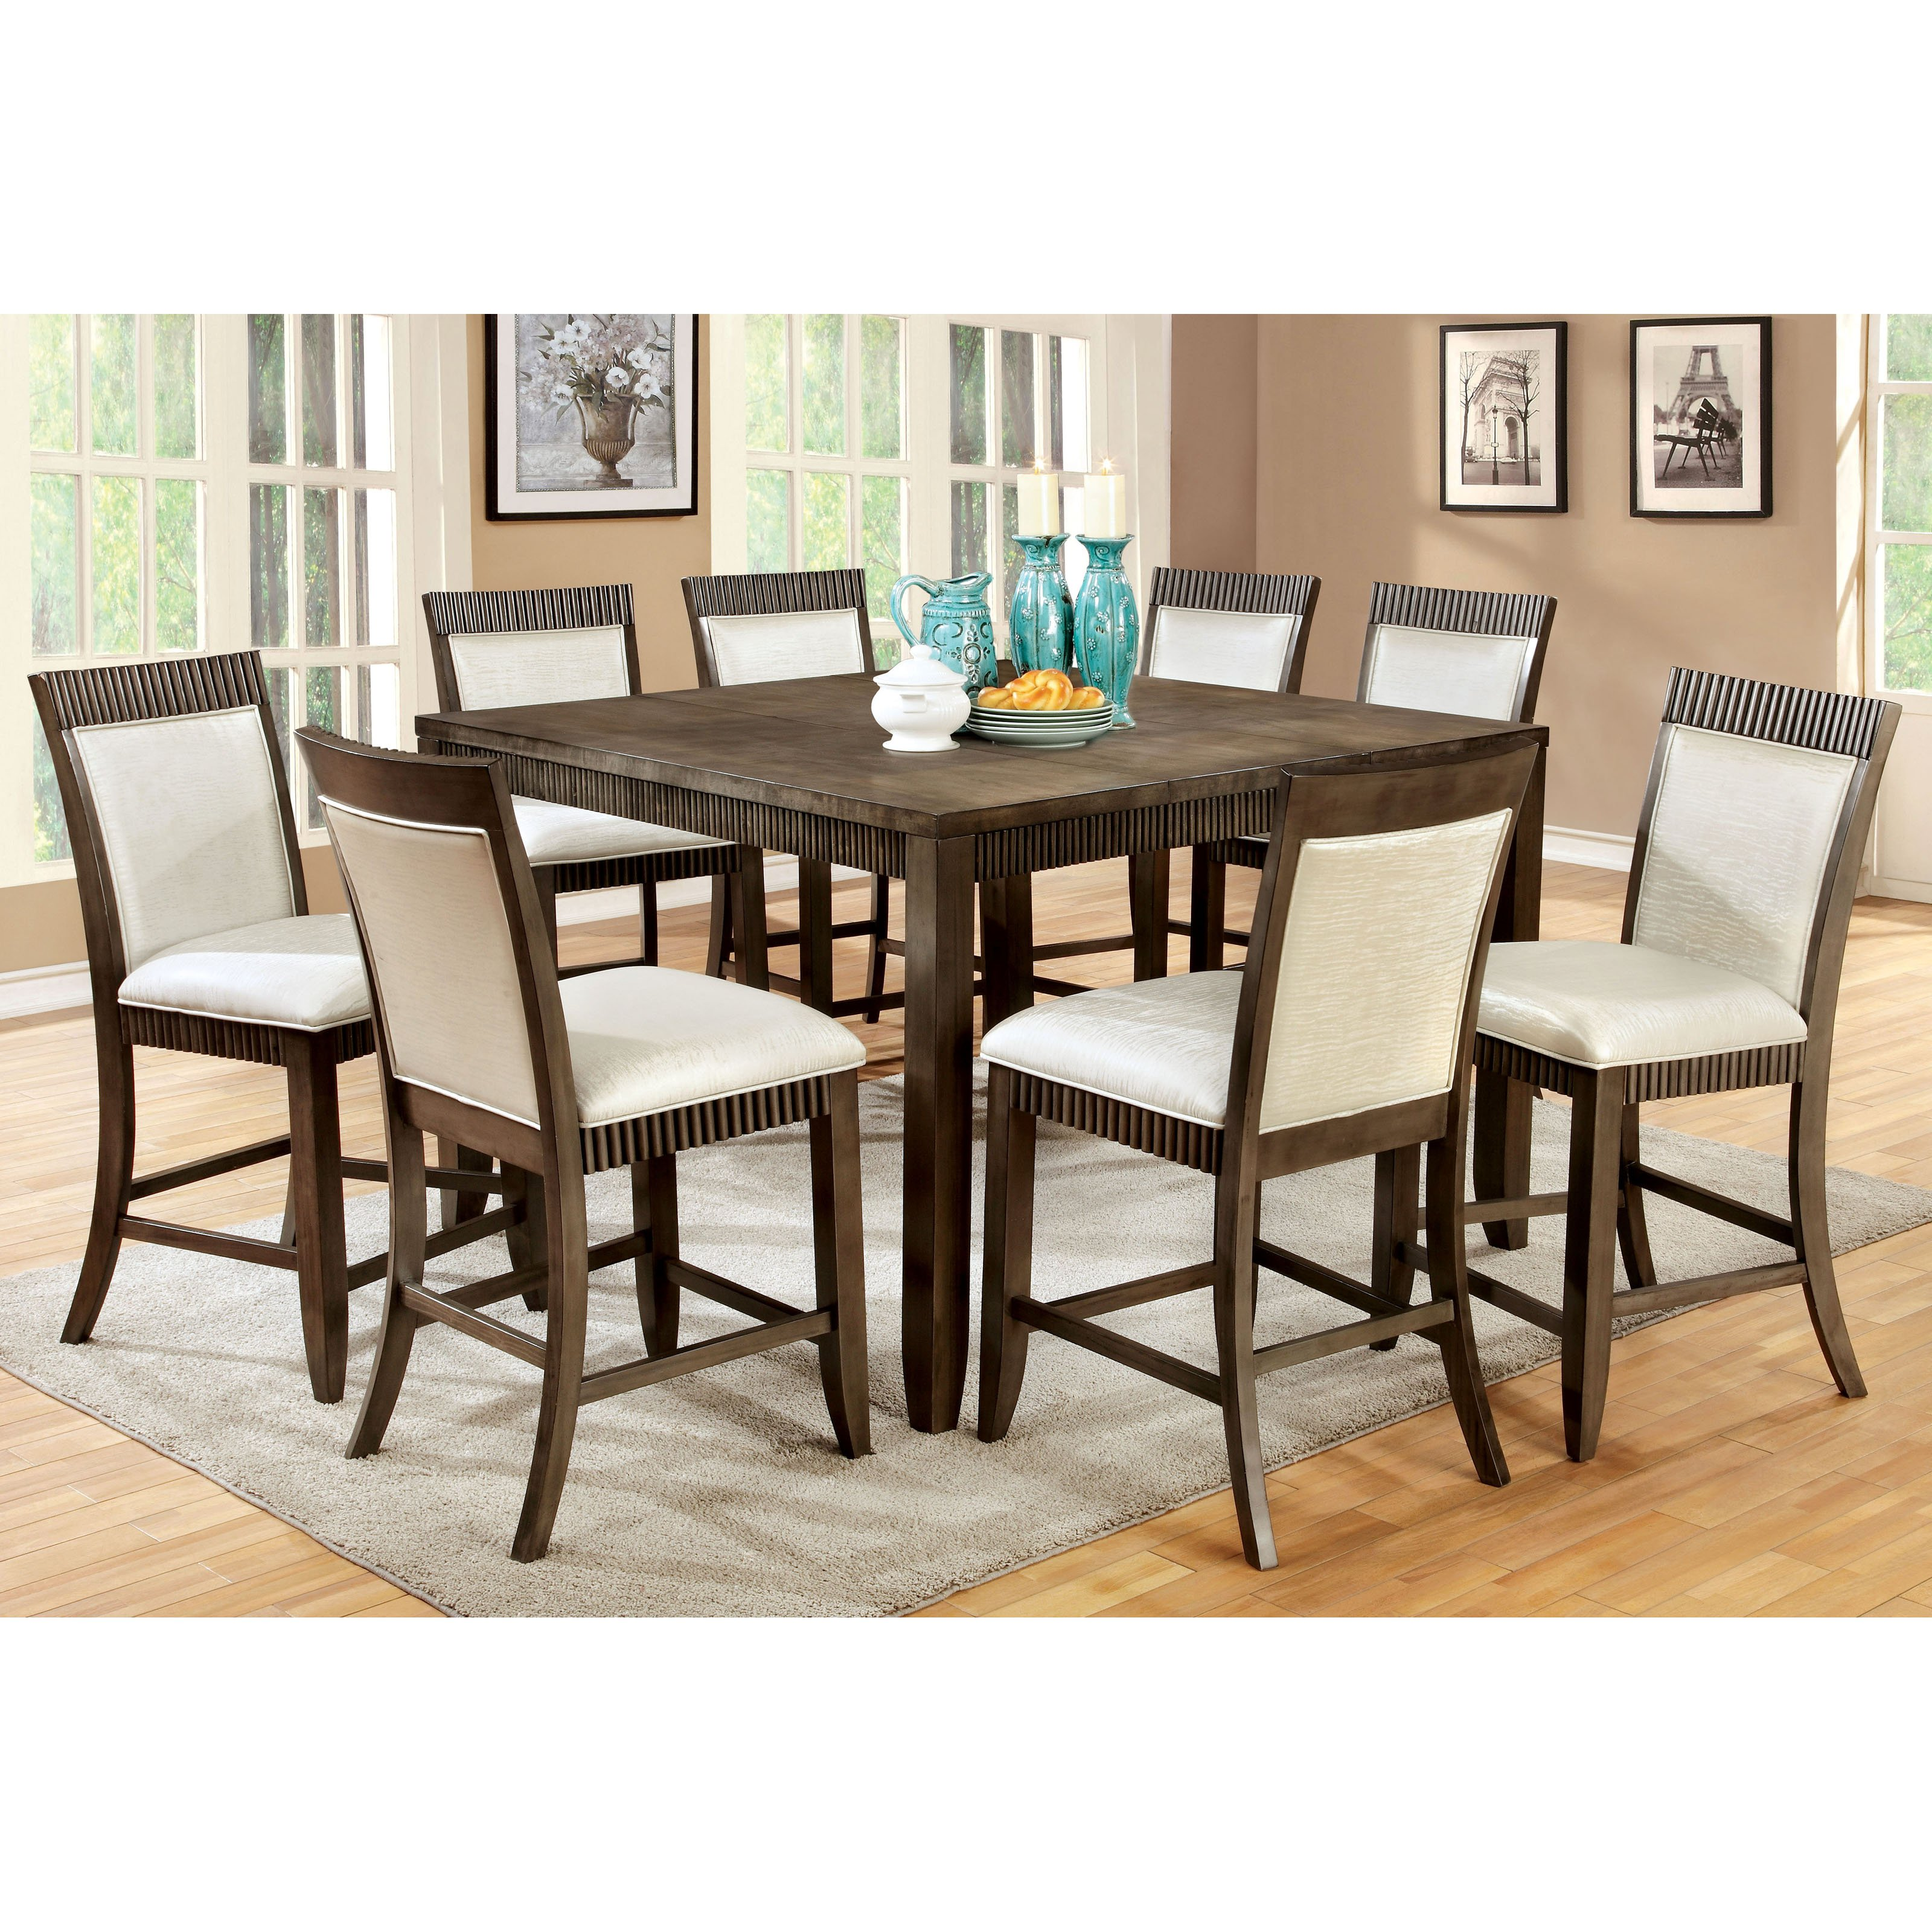 Furniture Of America Midkiff Transitional 9 Piece Counter Height Wood  Dining Table Set